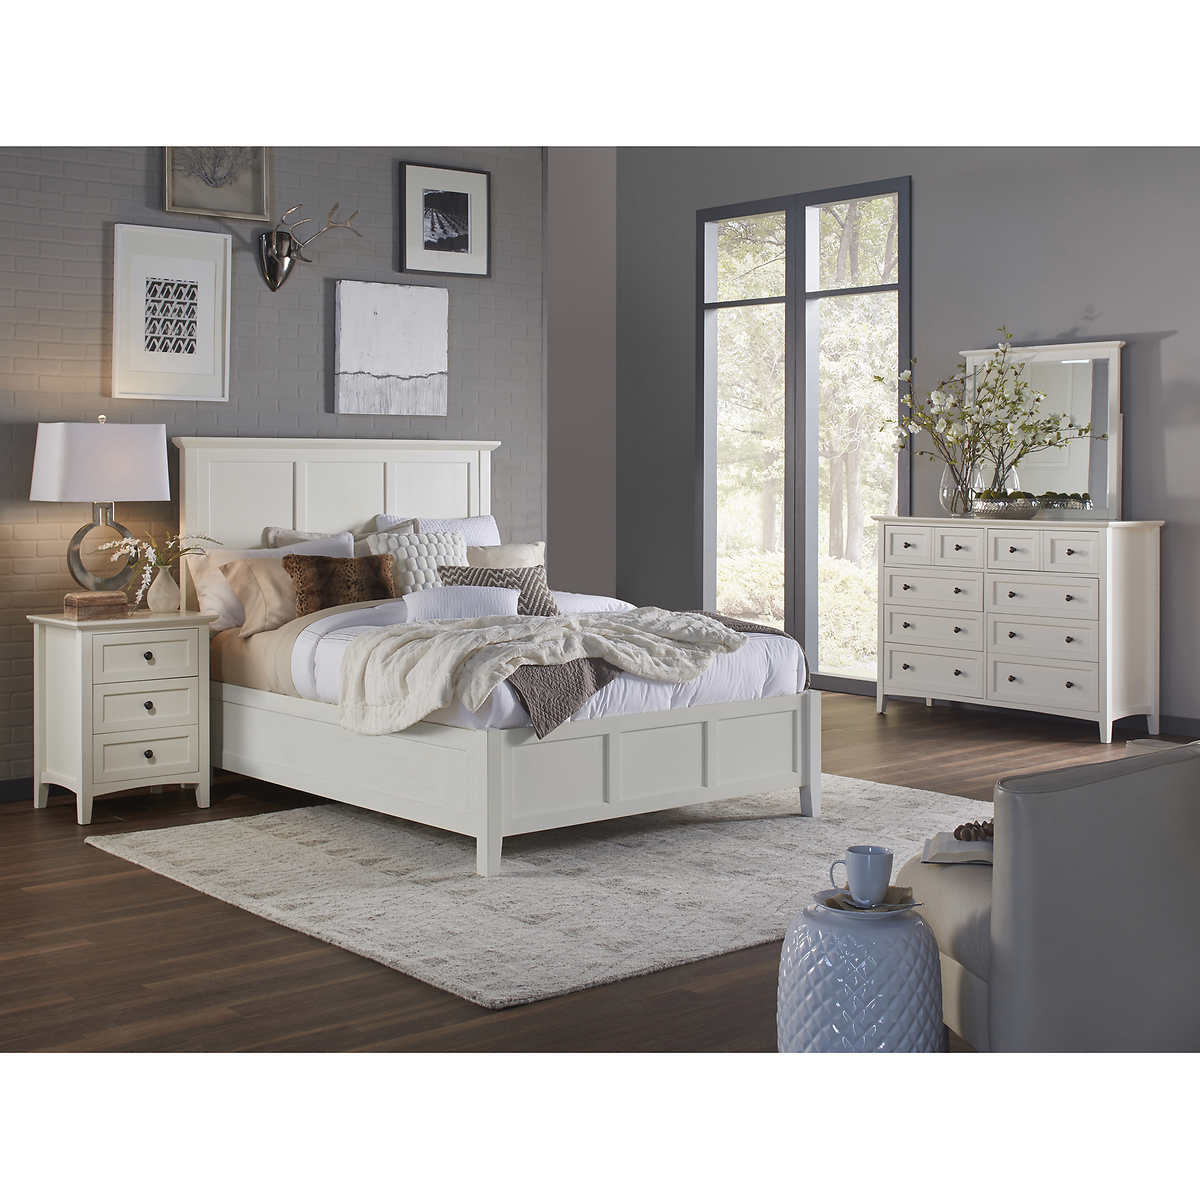 Paolina 5-piece Queen Bedroom Set | Shop Fowarding